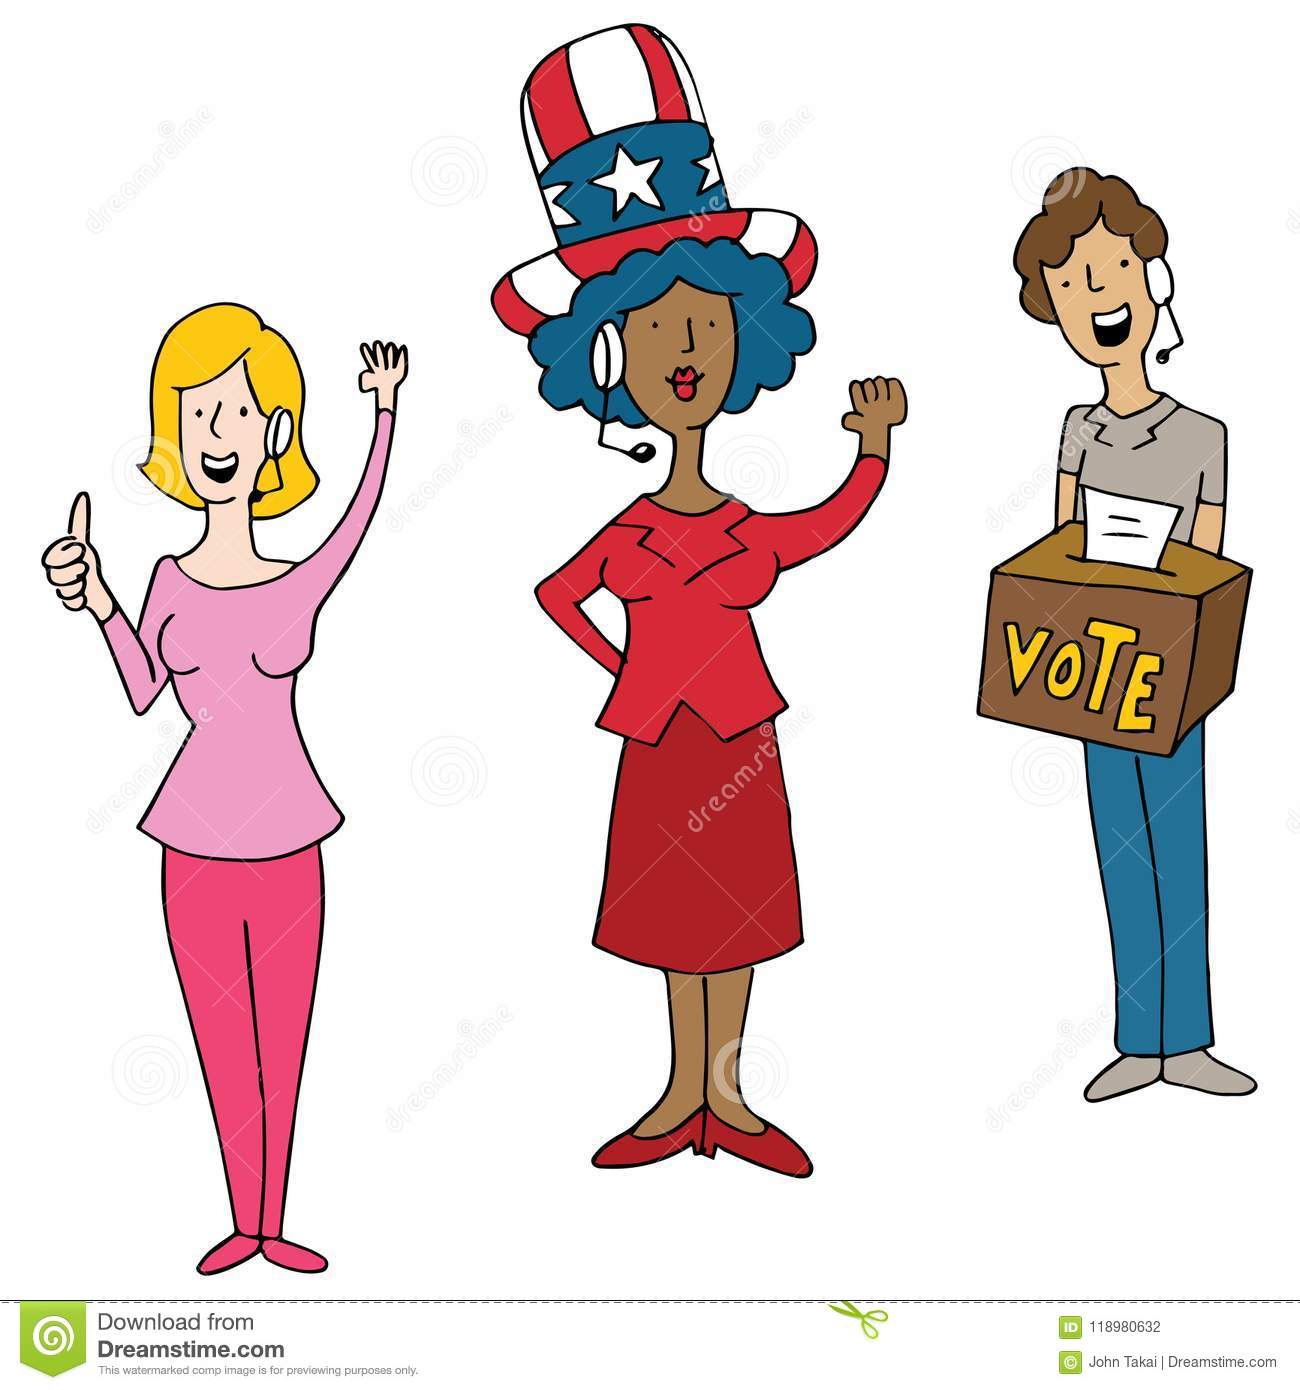 Download Headset Wearing Operators Election Day Voting Cartoon Stock Vector - Illustration of funny, voting: 118980632